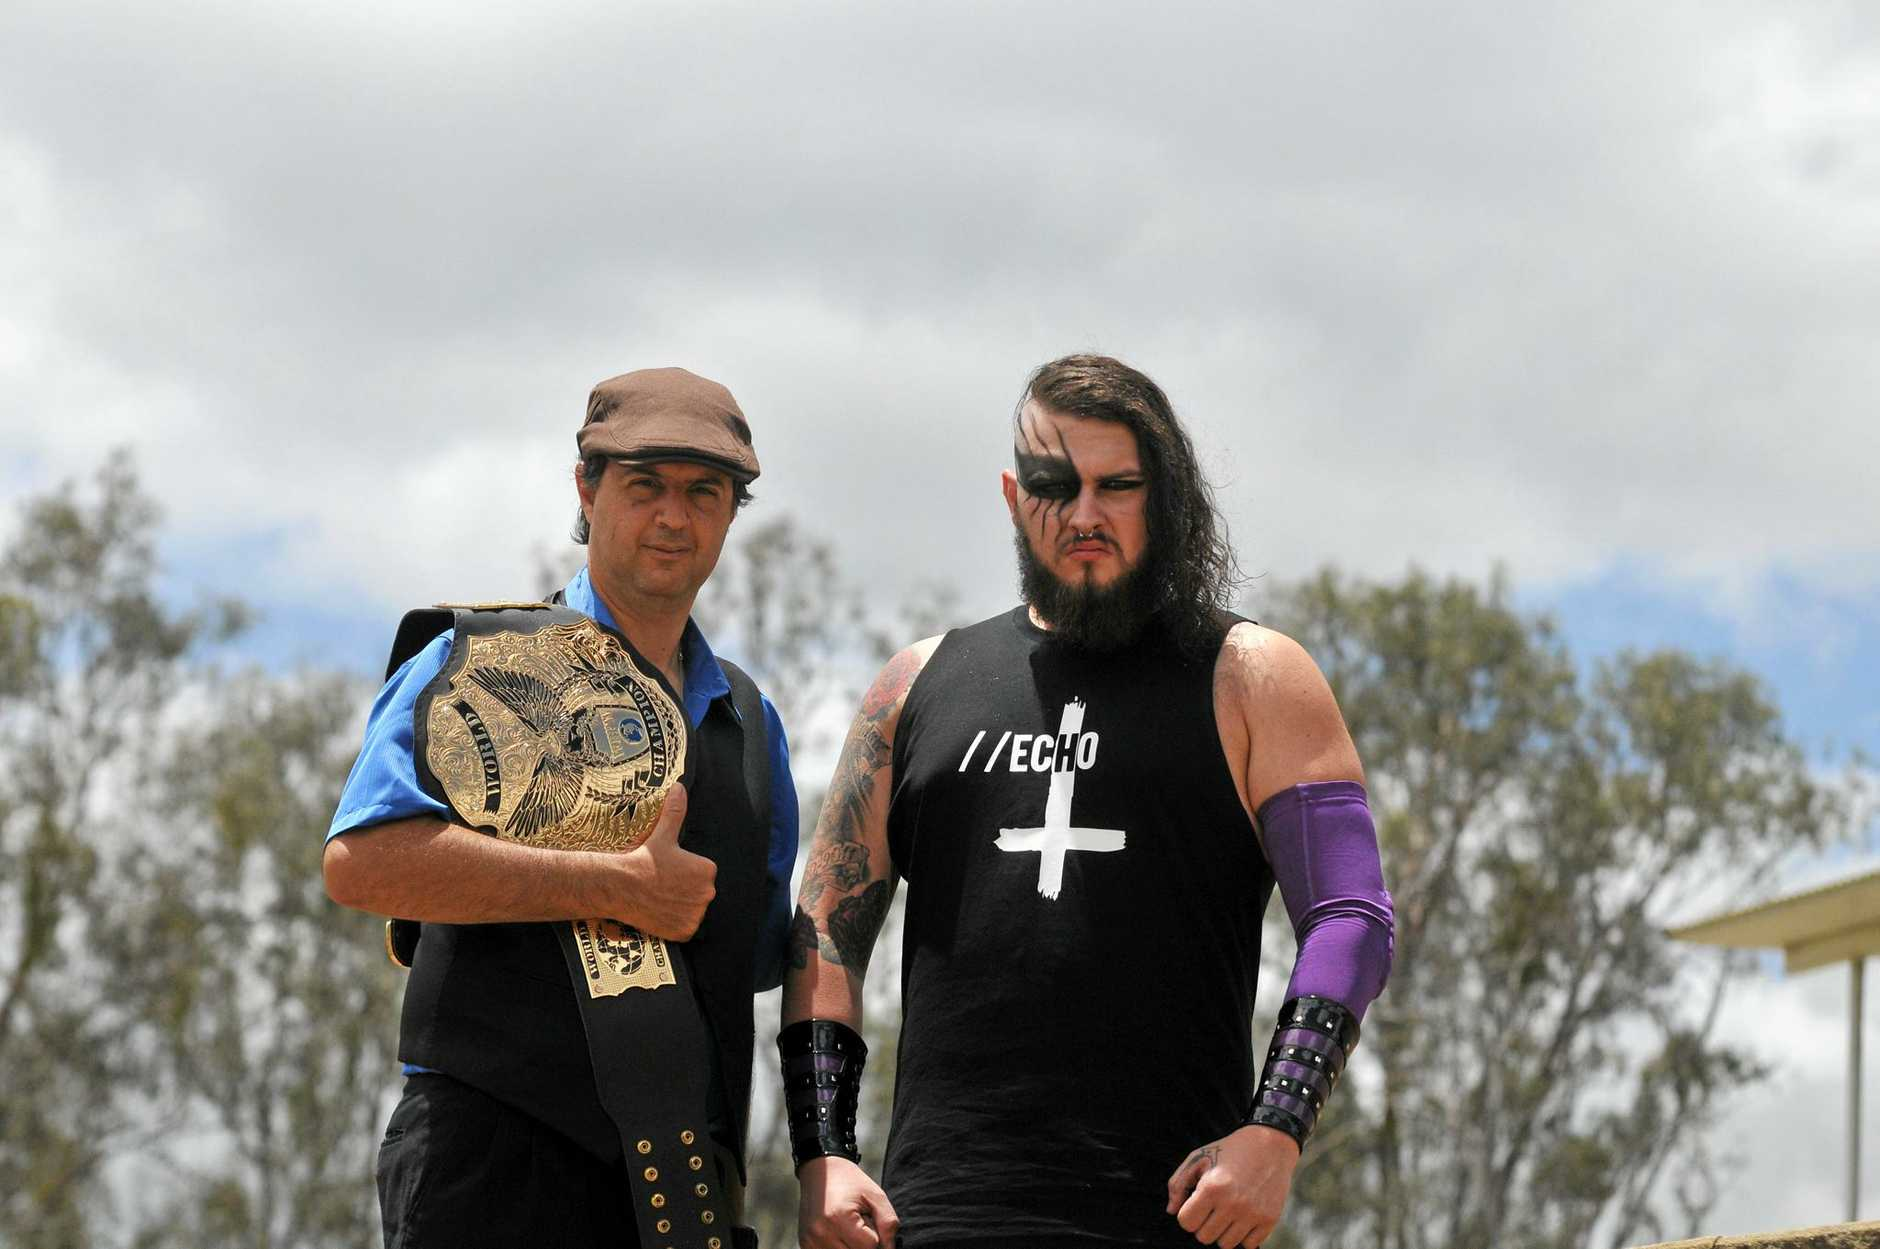 SMACK DOWN: Anthony 'The Bull' Romano (aka Anthony Puleo) holds the title belt while Casey 'Echo' Eichmann is looking to impress in his debut match.